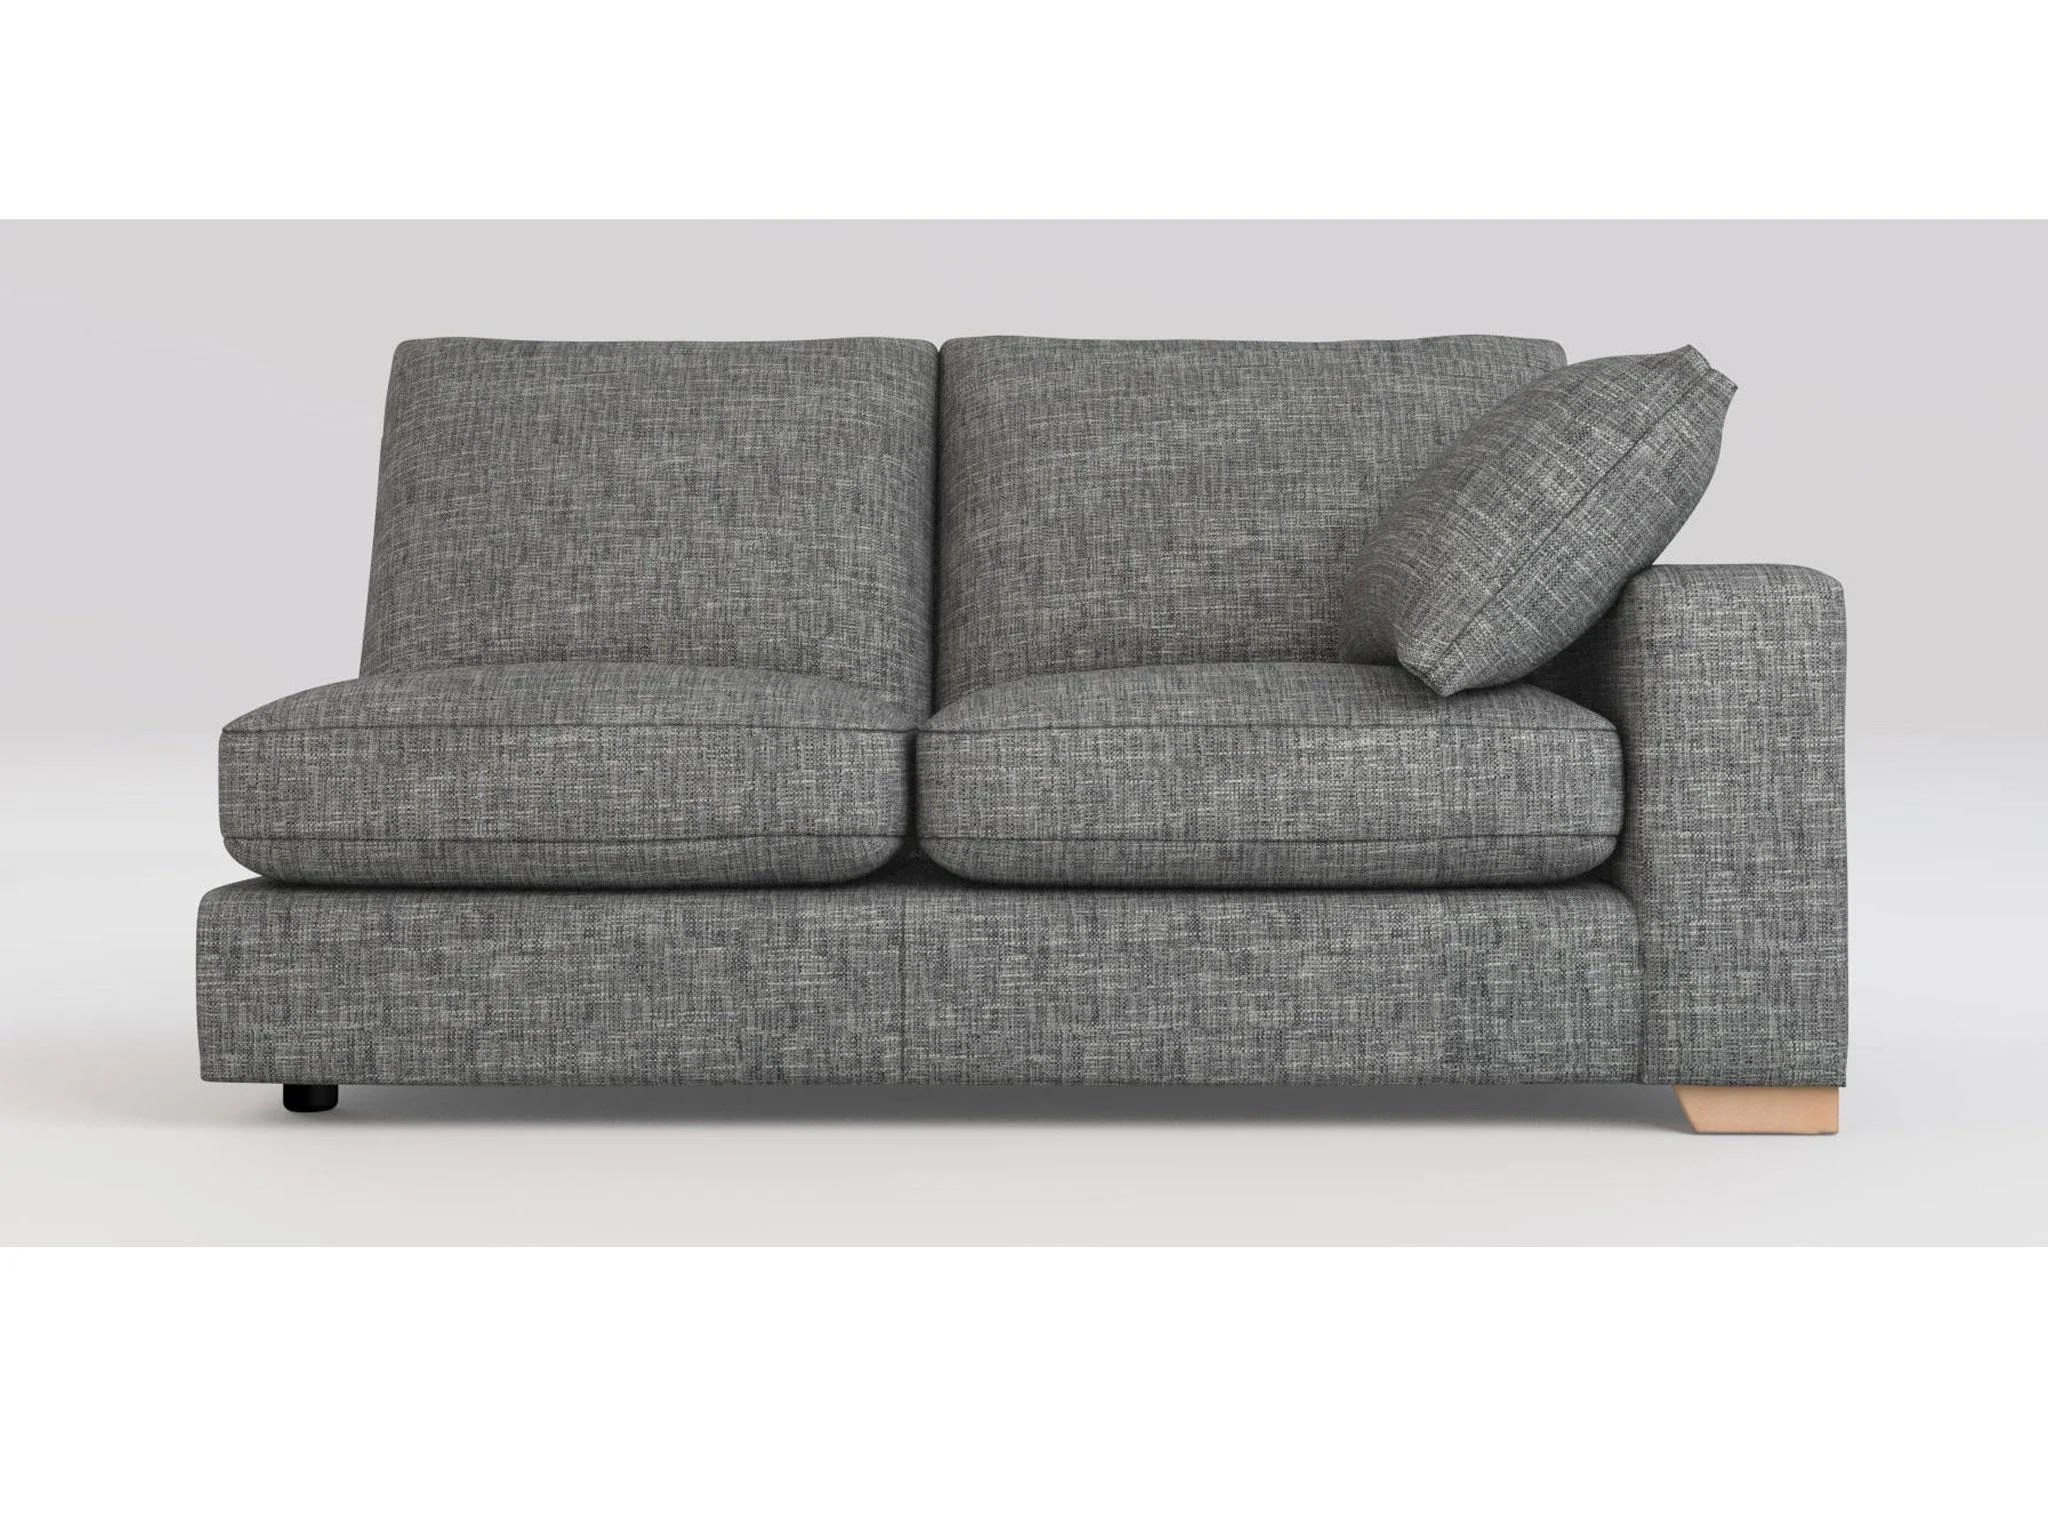 htl sofa stockists uk how to fix a tear in leather 11 best corner sofas the independent this boxy comes with variety of options build it up from number units suit your space there s discount for buying four same